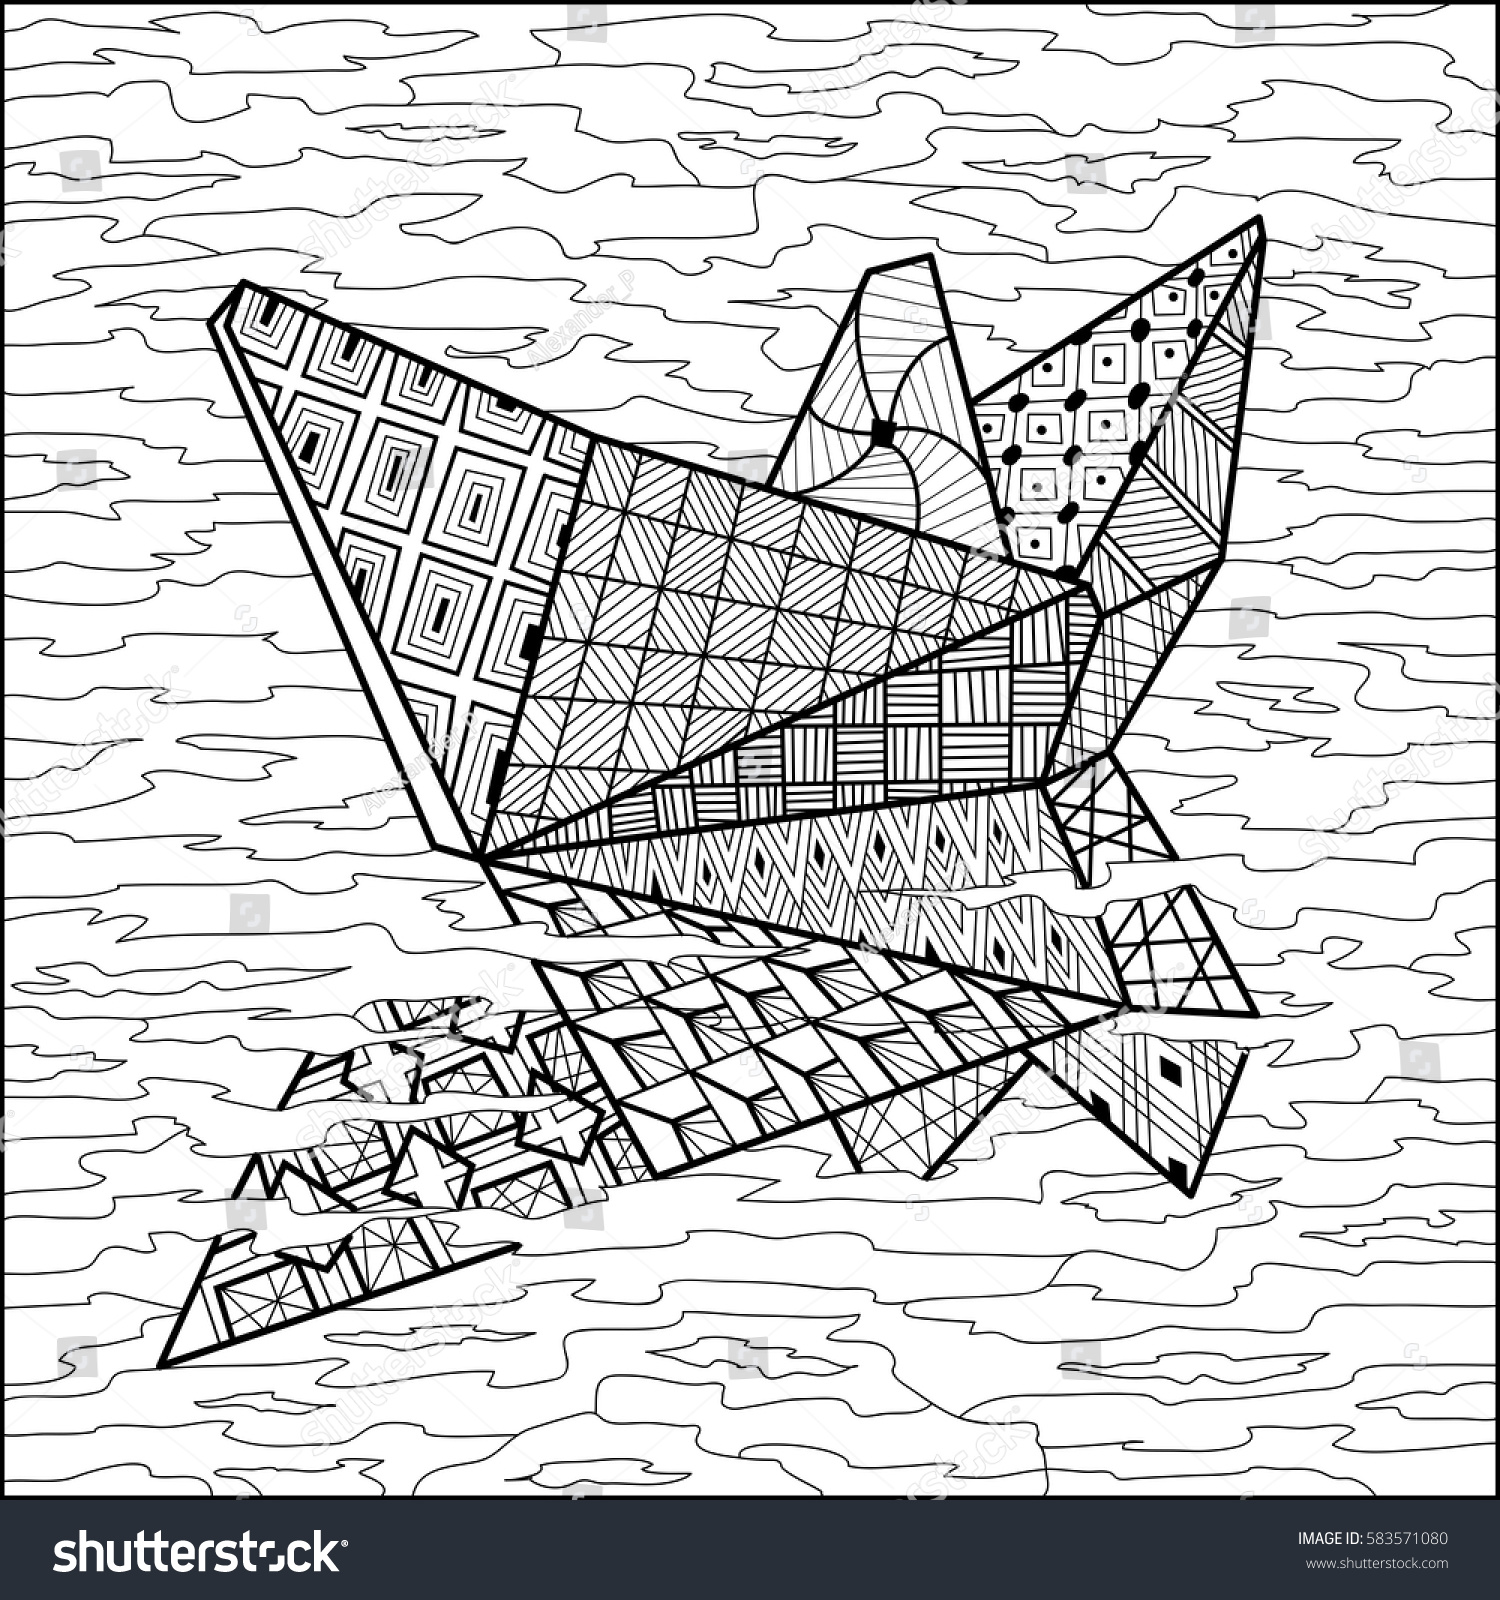 paper boat on water coloring book vector illustration coloring for adult black and white - Coloring Book Paper Stock